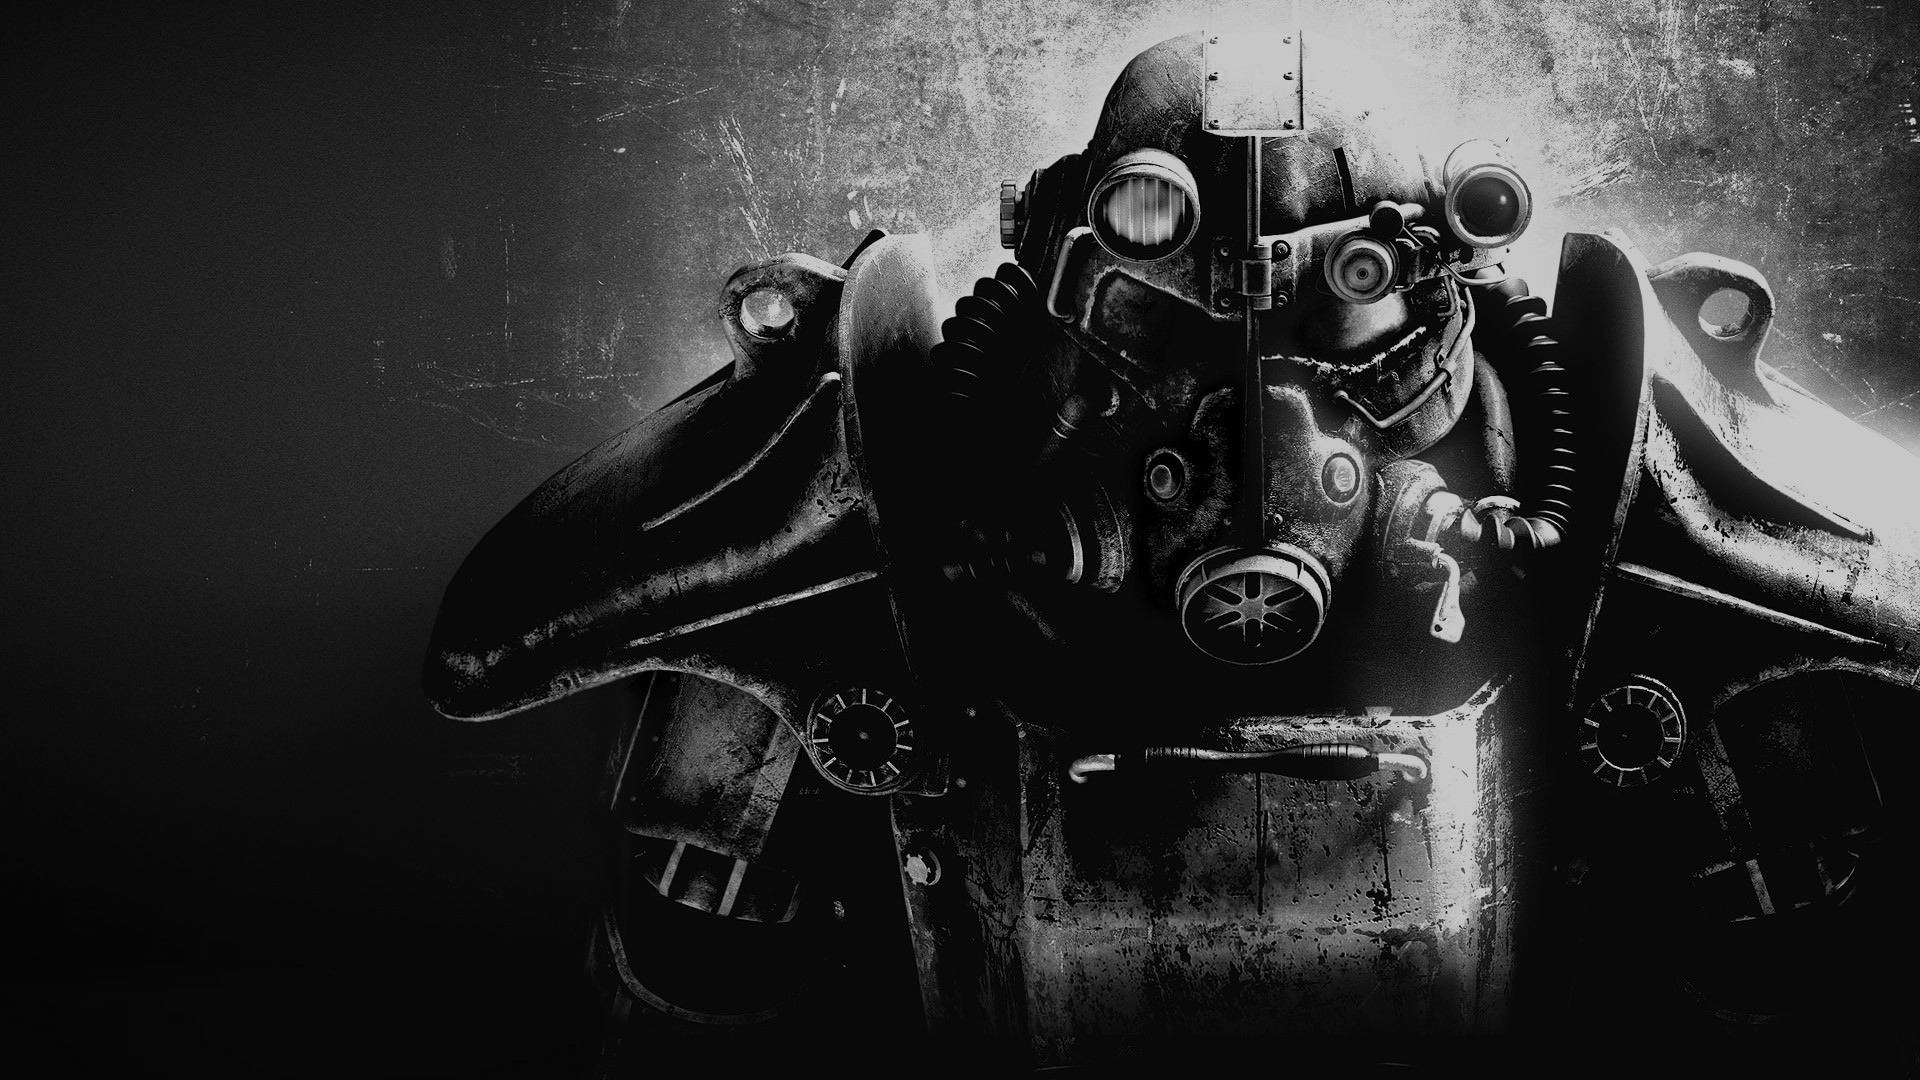 1920x1080 HD Fallout Wallpaper | Cool Wallpapers